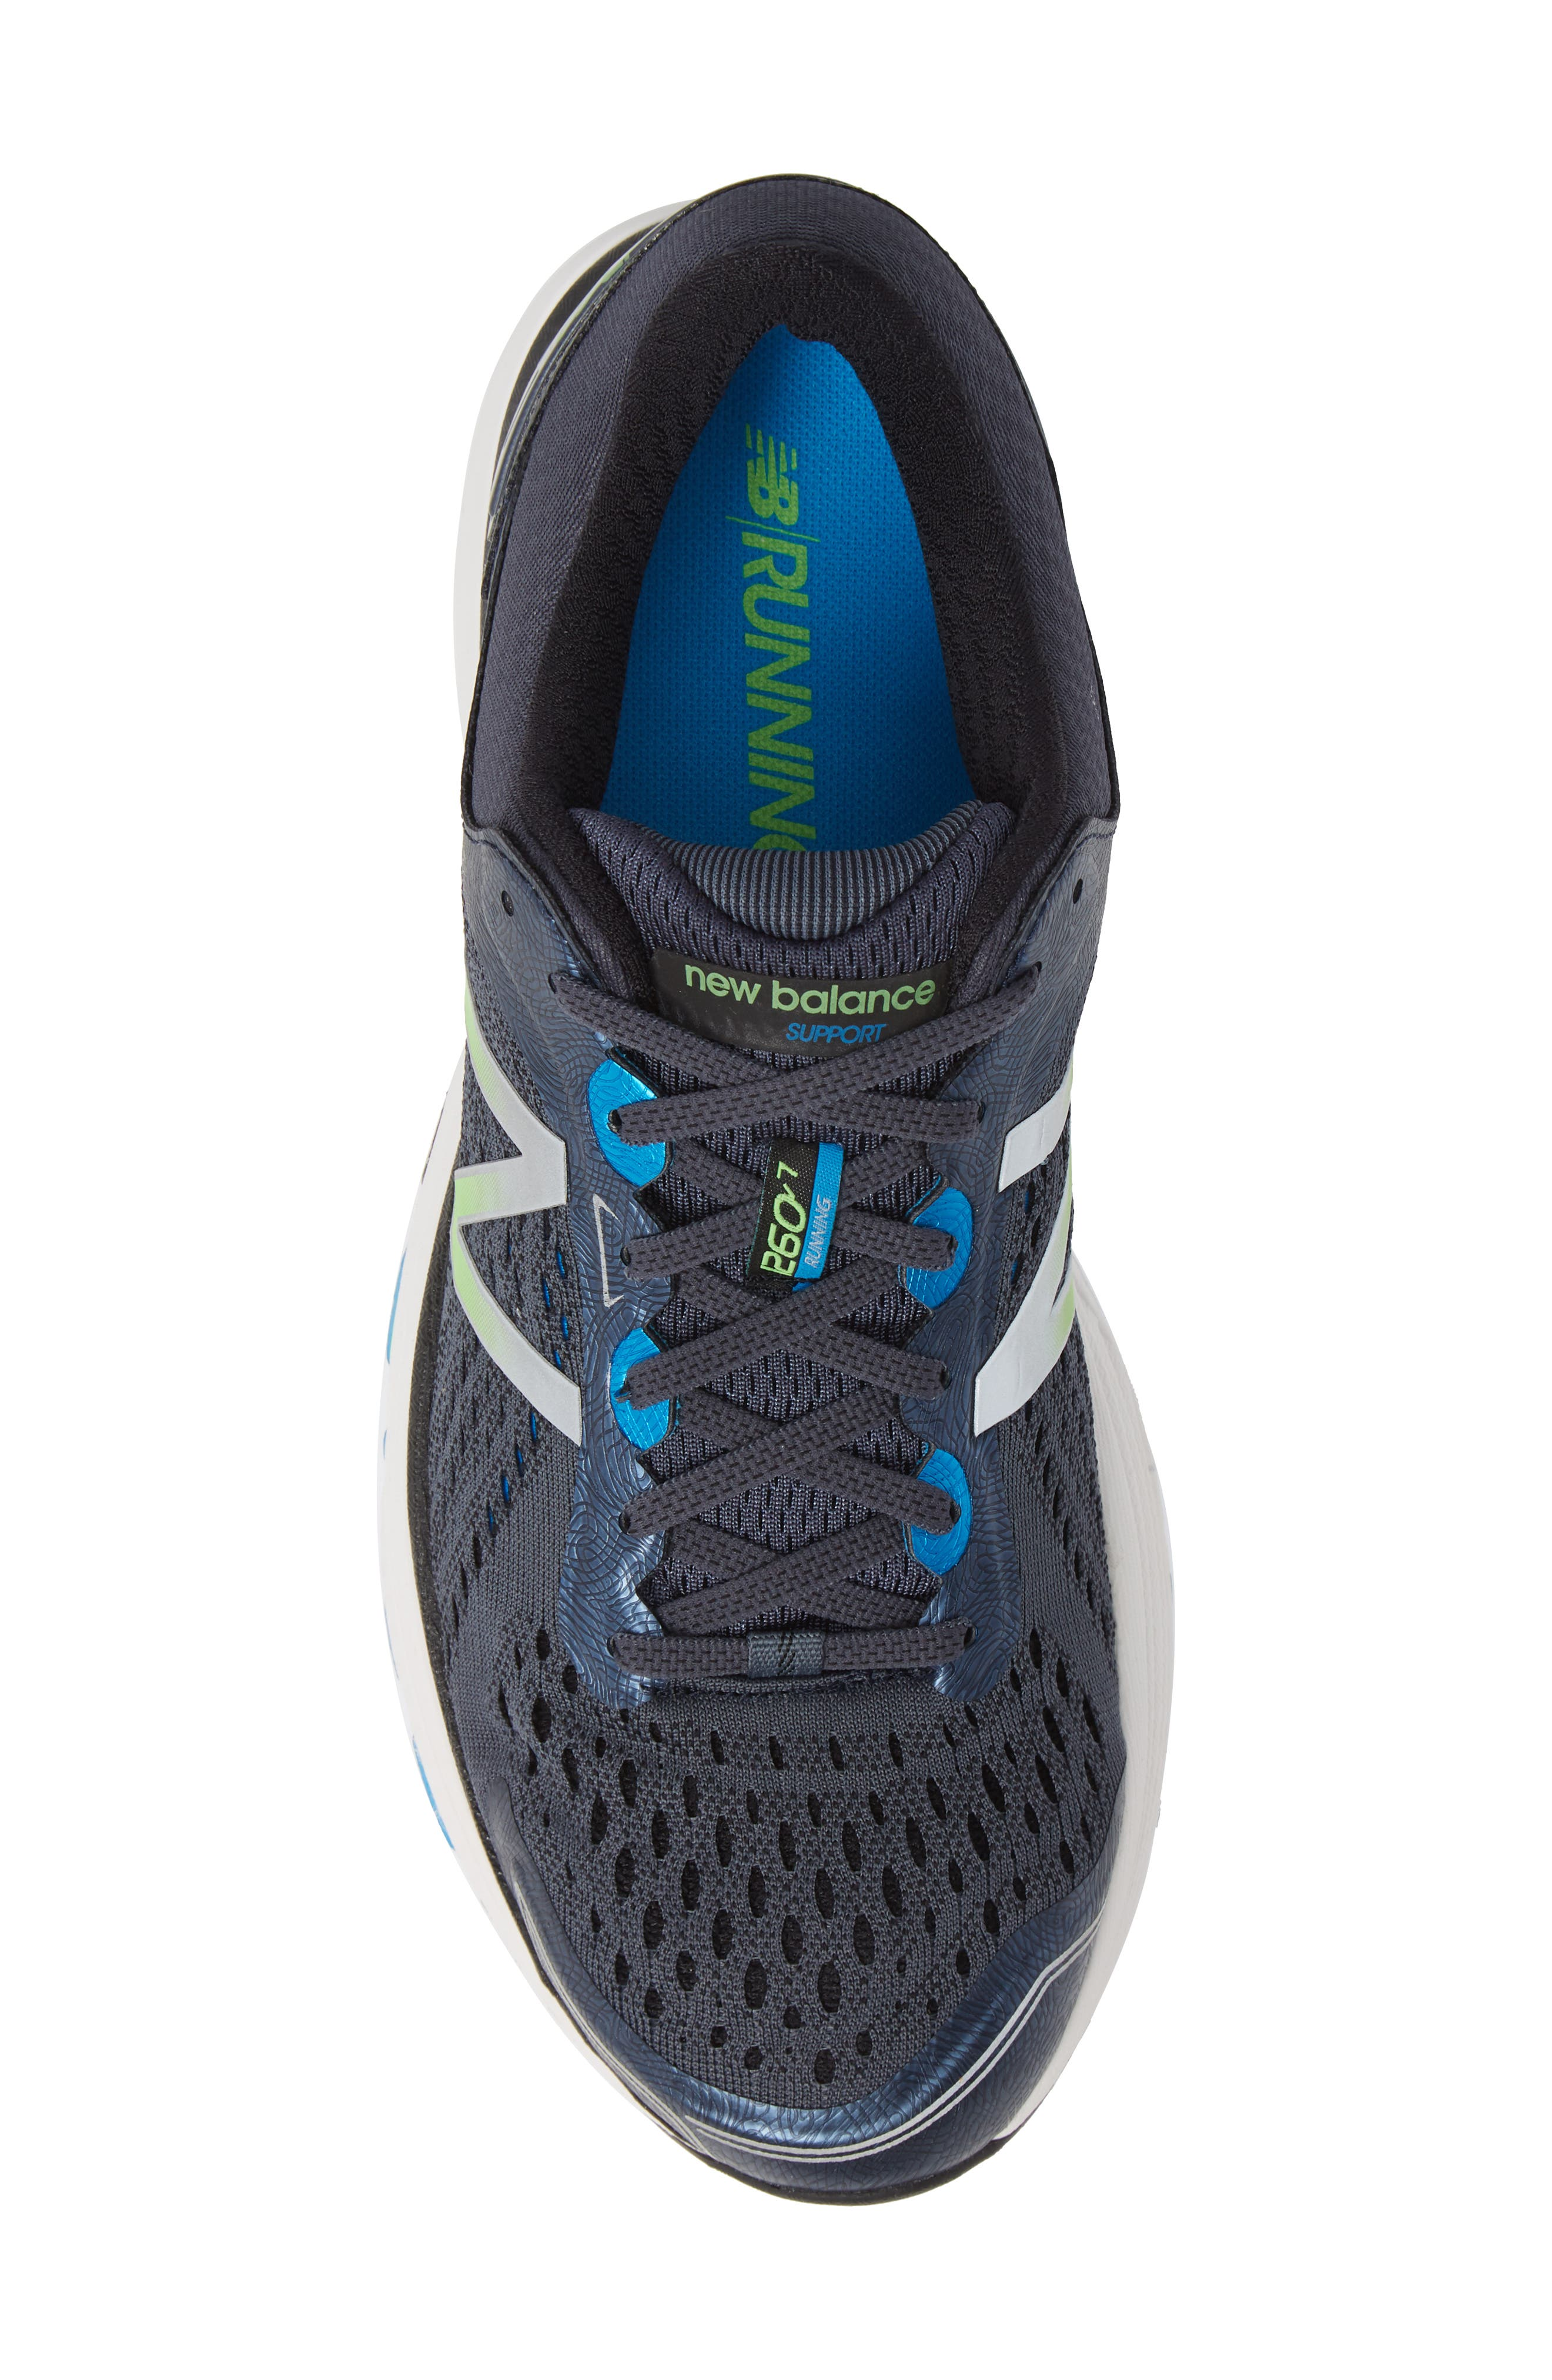 1260v7 Running Shoe,                             Alternate thumbnail 5, color,                             THUNDER